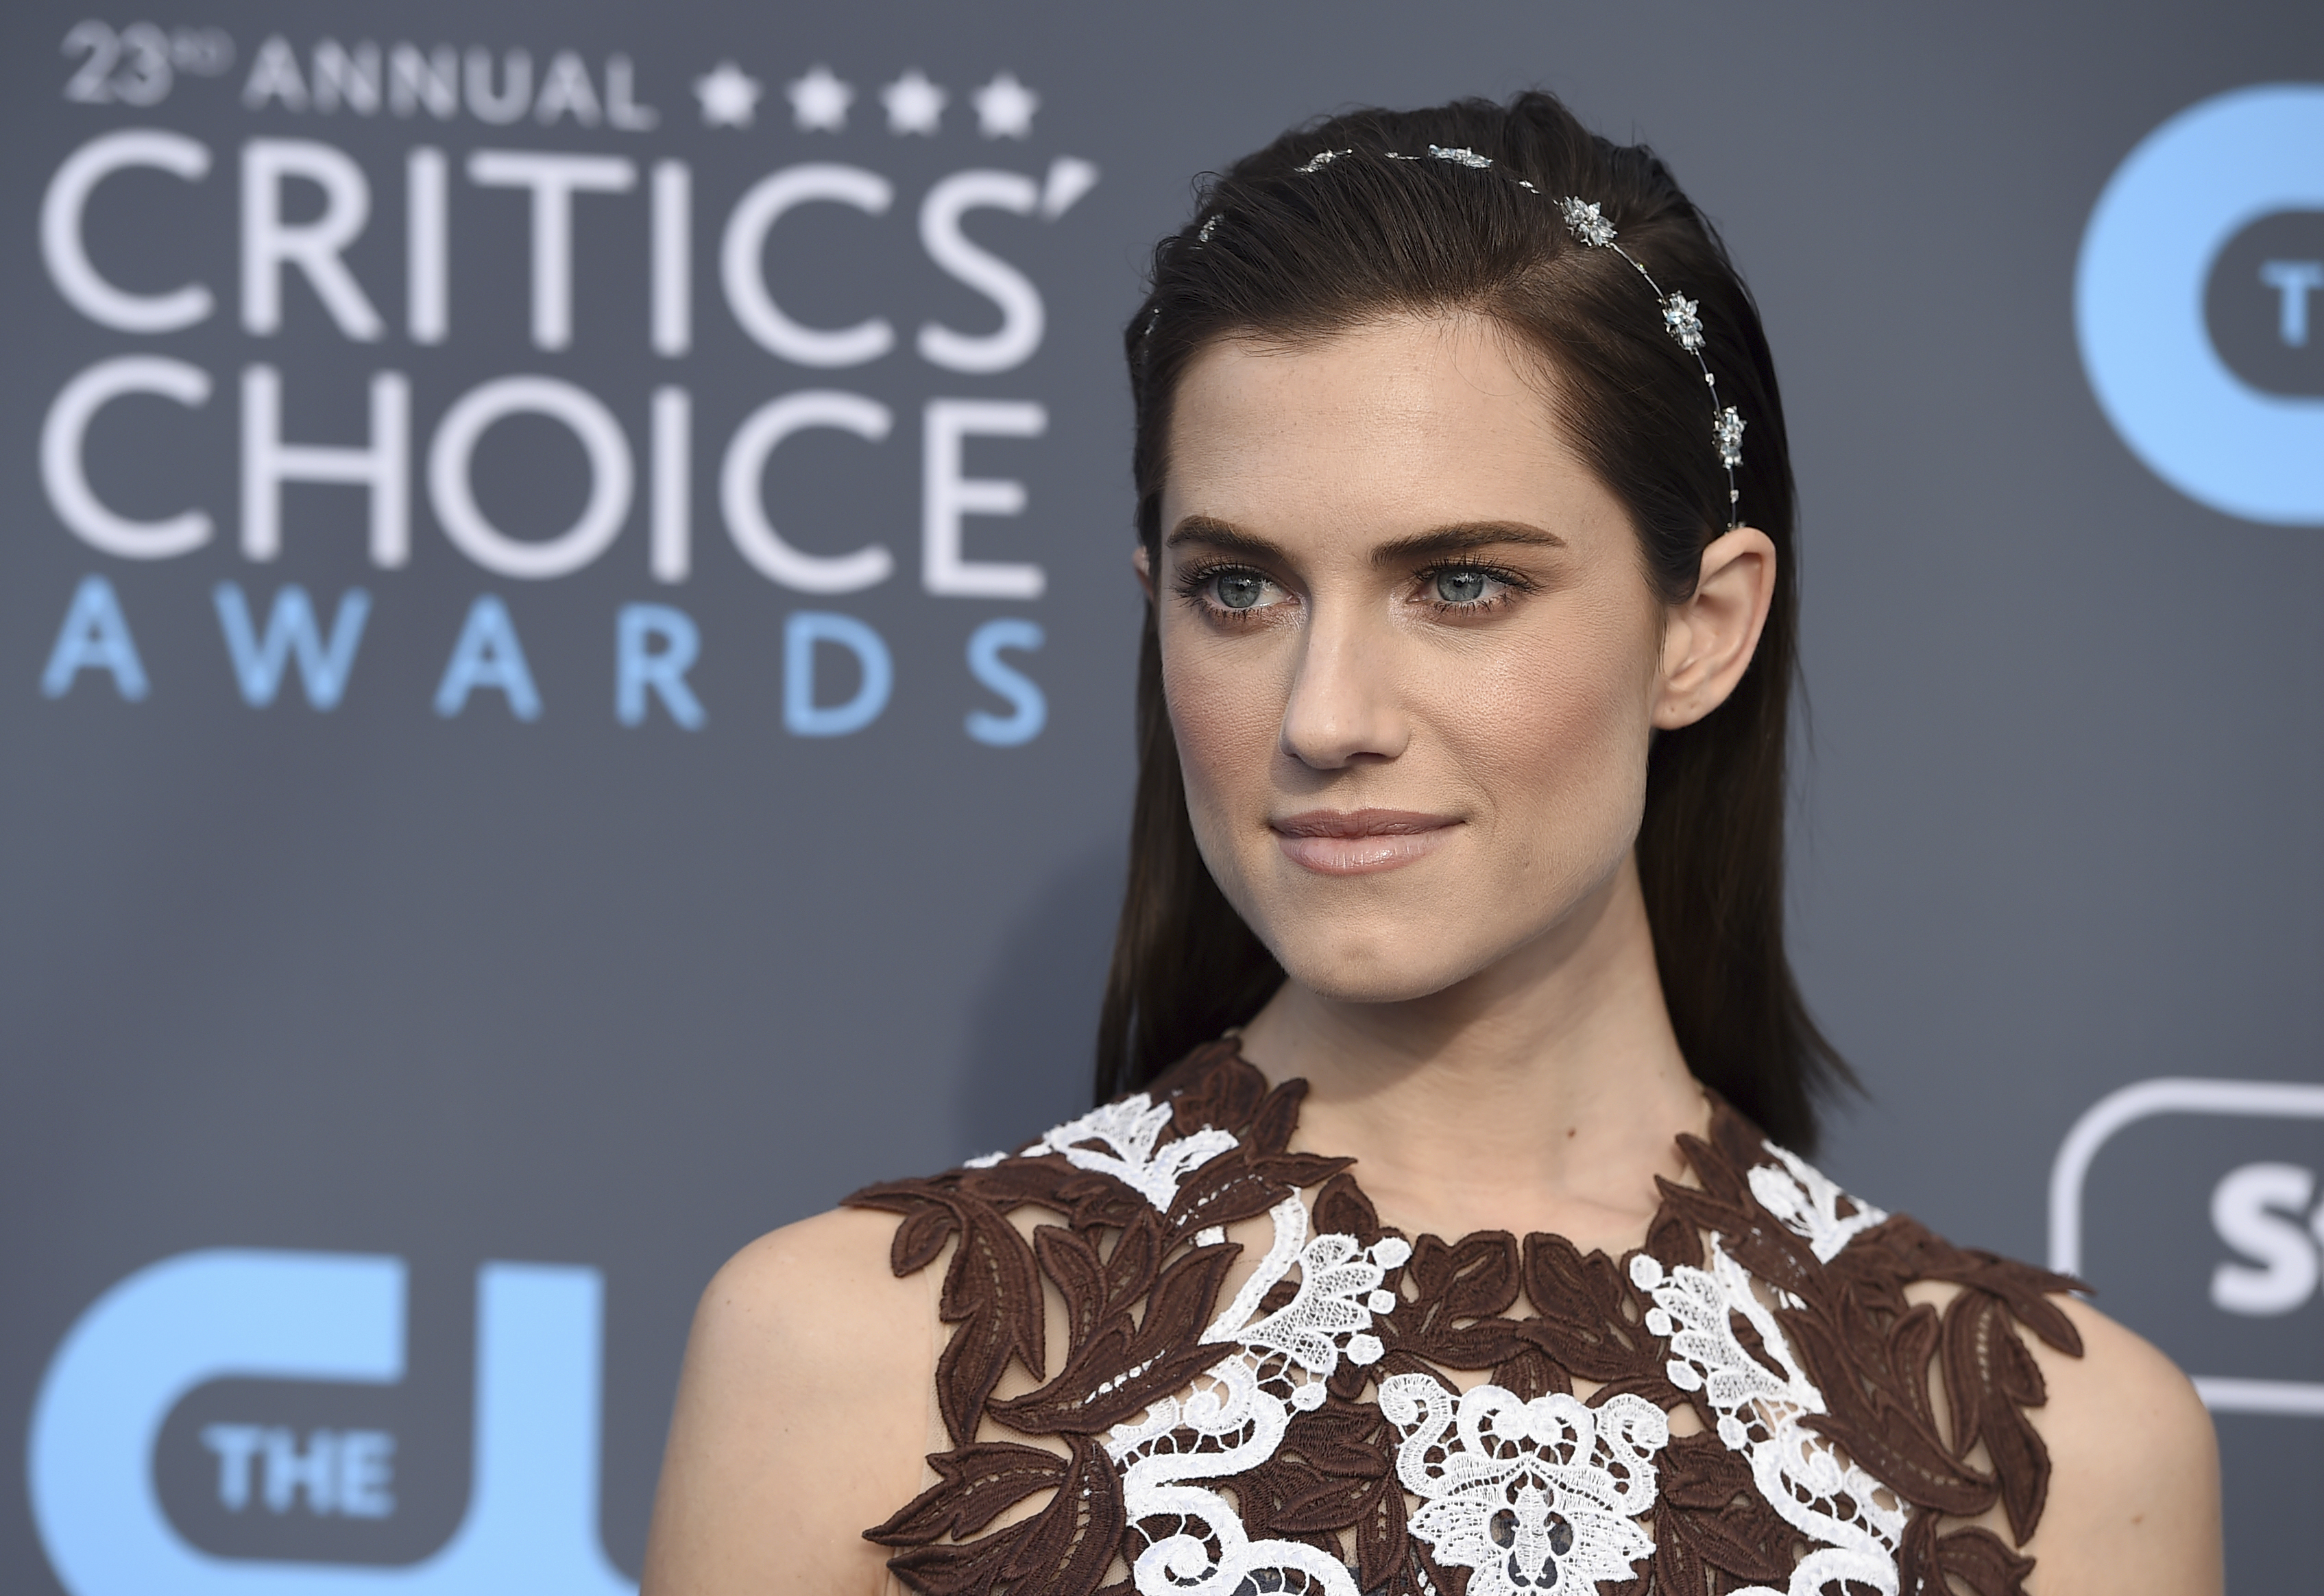 <div class='meta'><div class='origin-logo' data-origin='AP'></div><span class='caption-text' data-credit='Jordan Strauss/Invision/AP'>Allison Williams arrives at the 23rd annual Critics' Choice Awards at the Barker Hangar on Thursday, Jan. 11, 2018, in Santa Monica, Calif.</span></div>